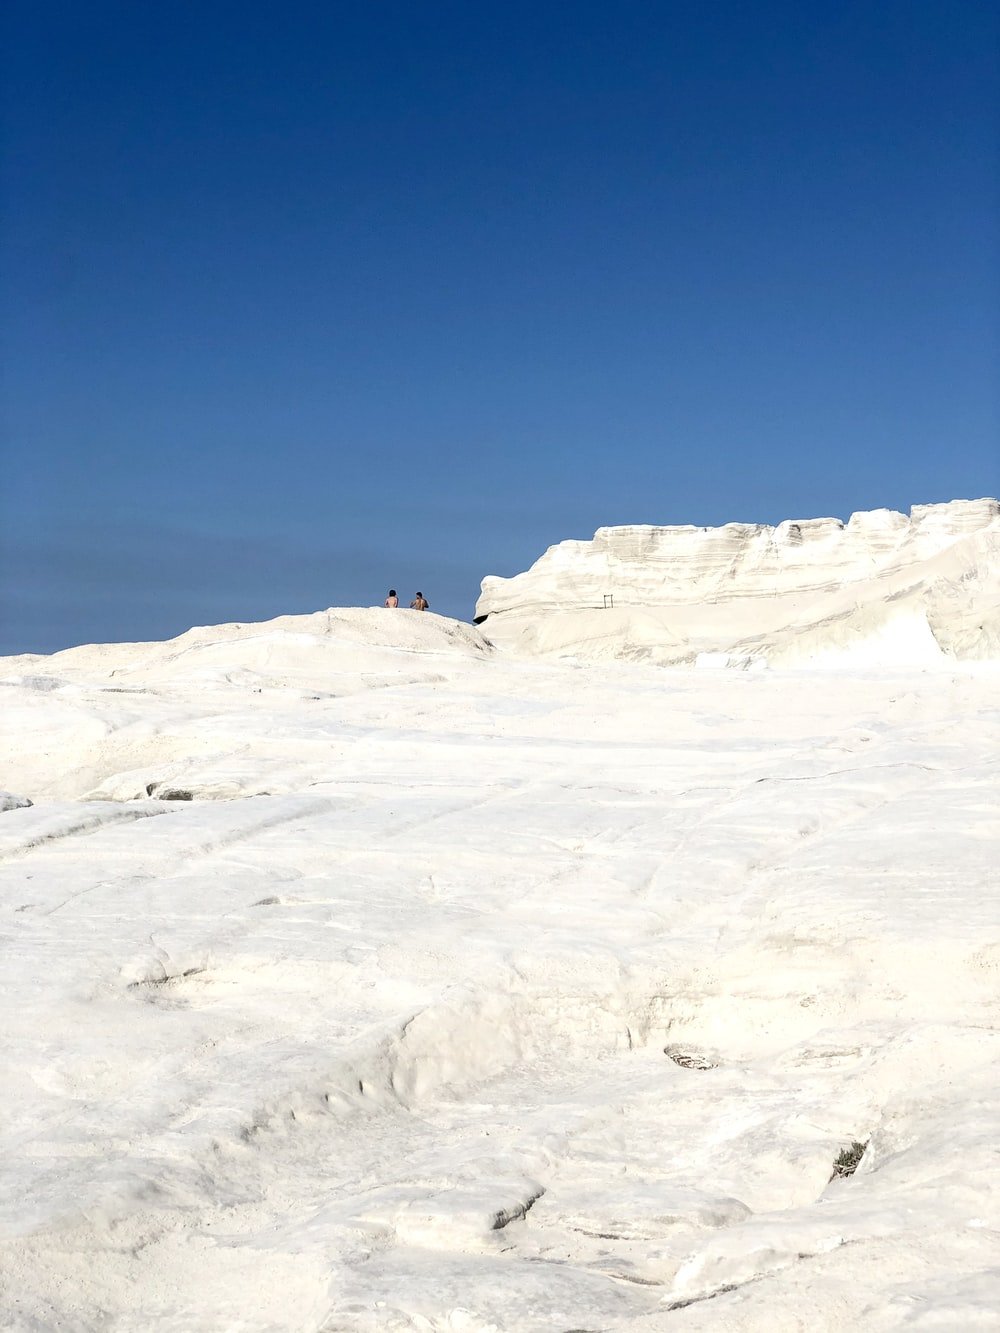 white and gray rock formation under blue sky during daytime